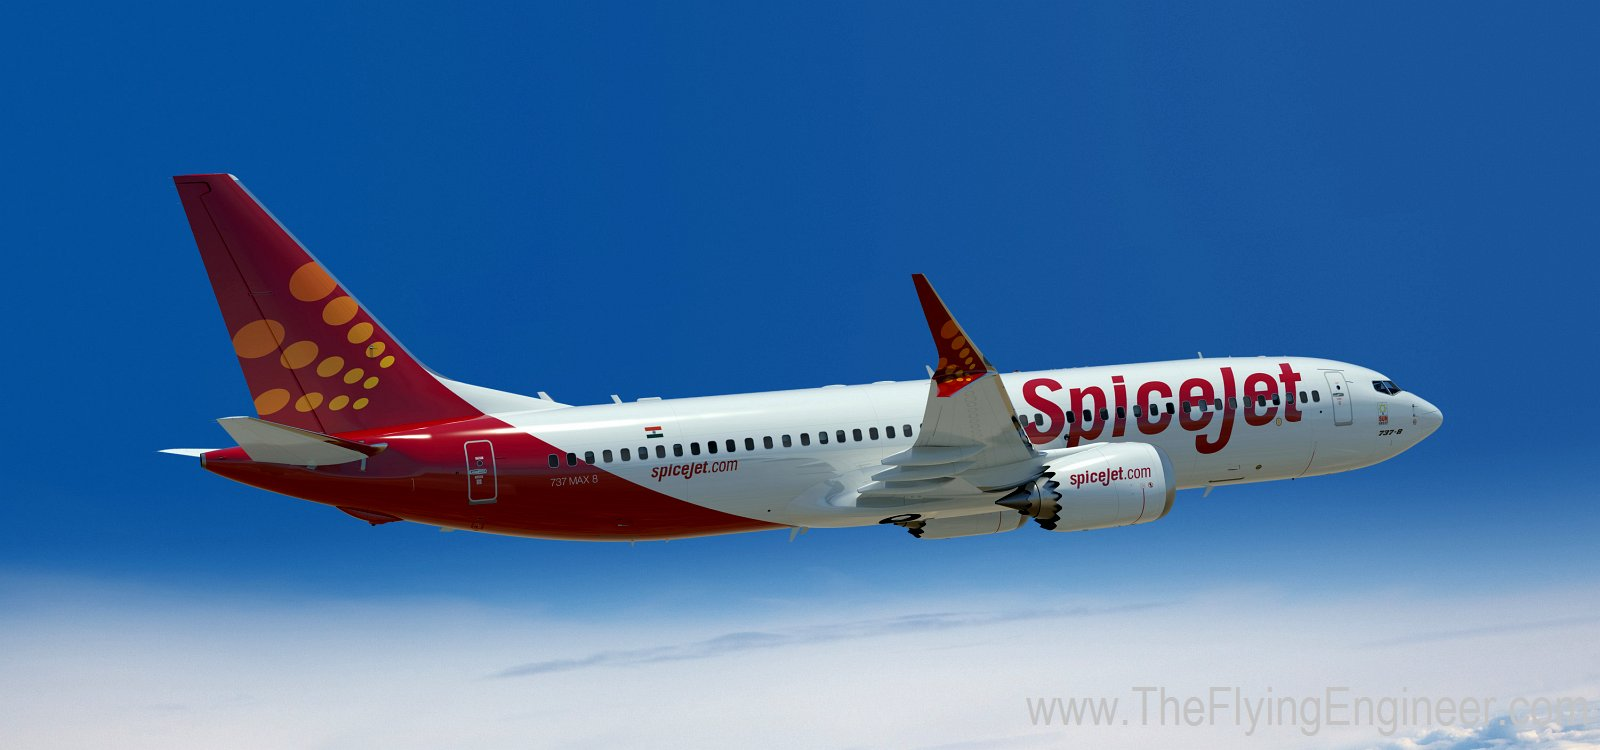 Could SpiceJet have been profitable in FY2013-14? | The Flying.